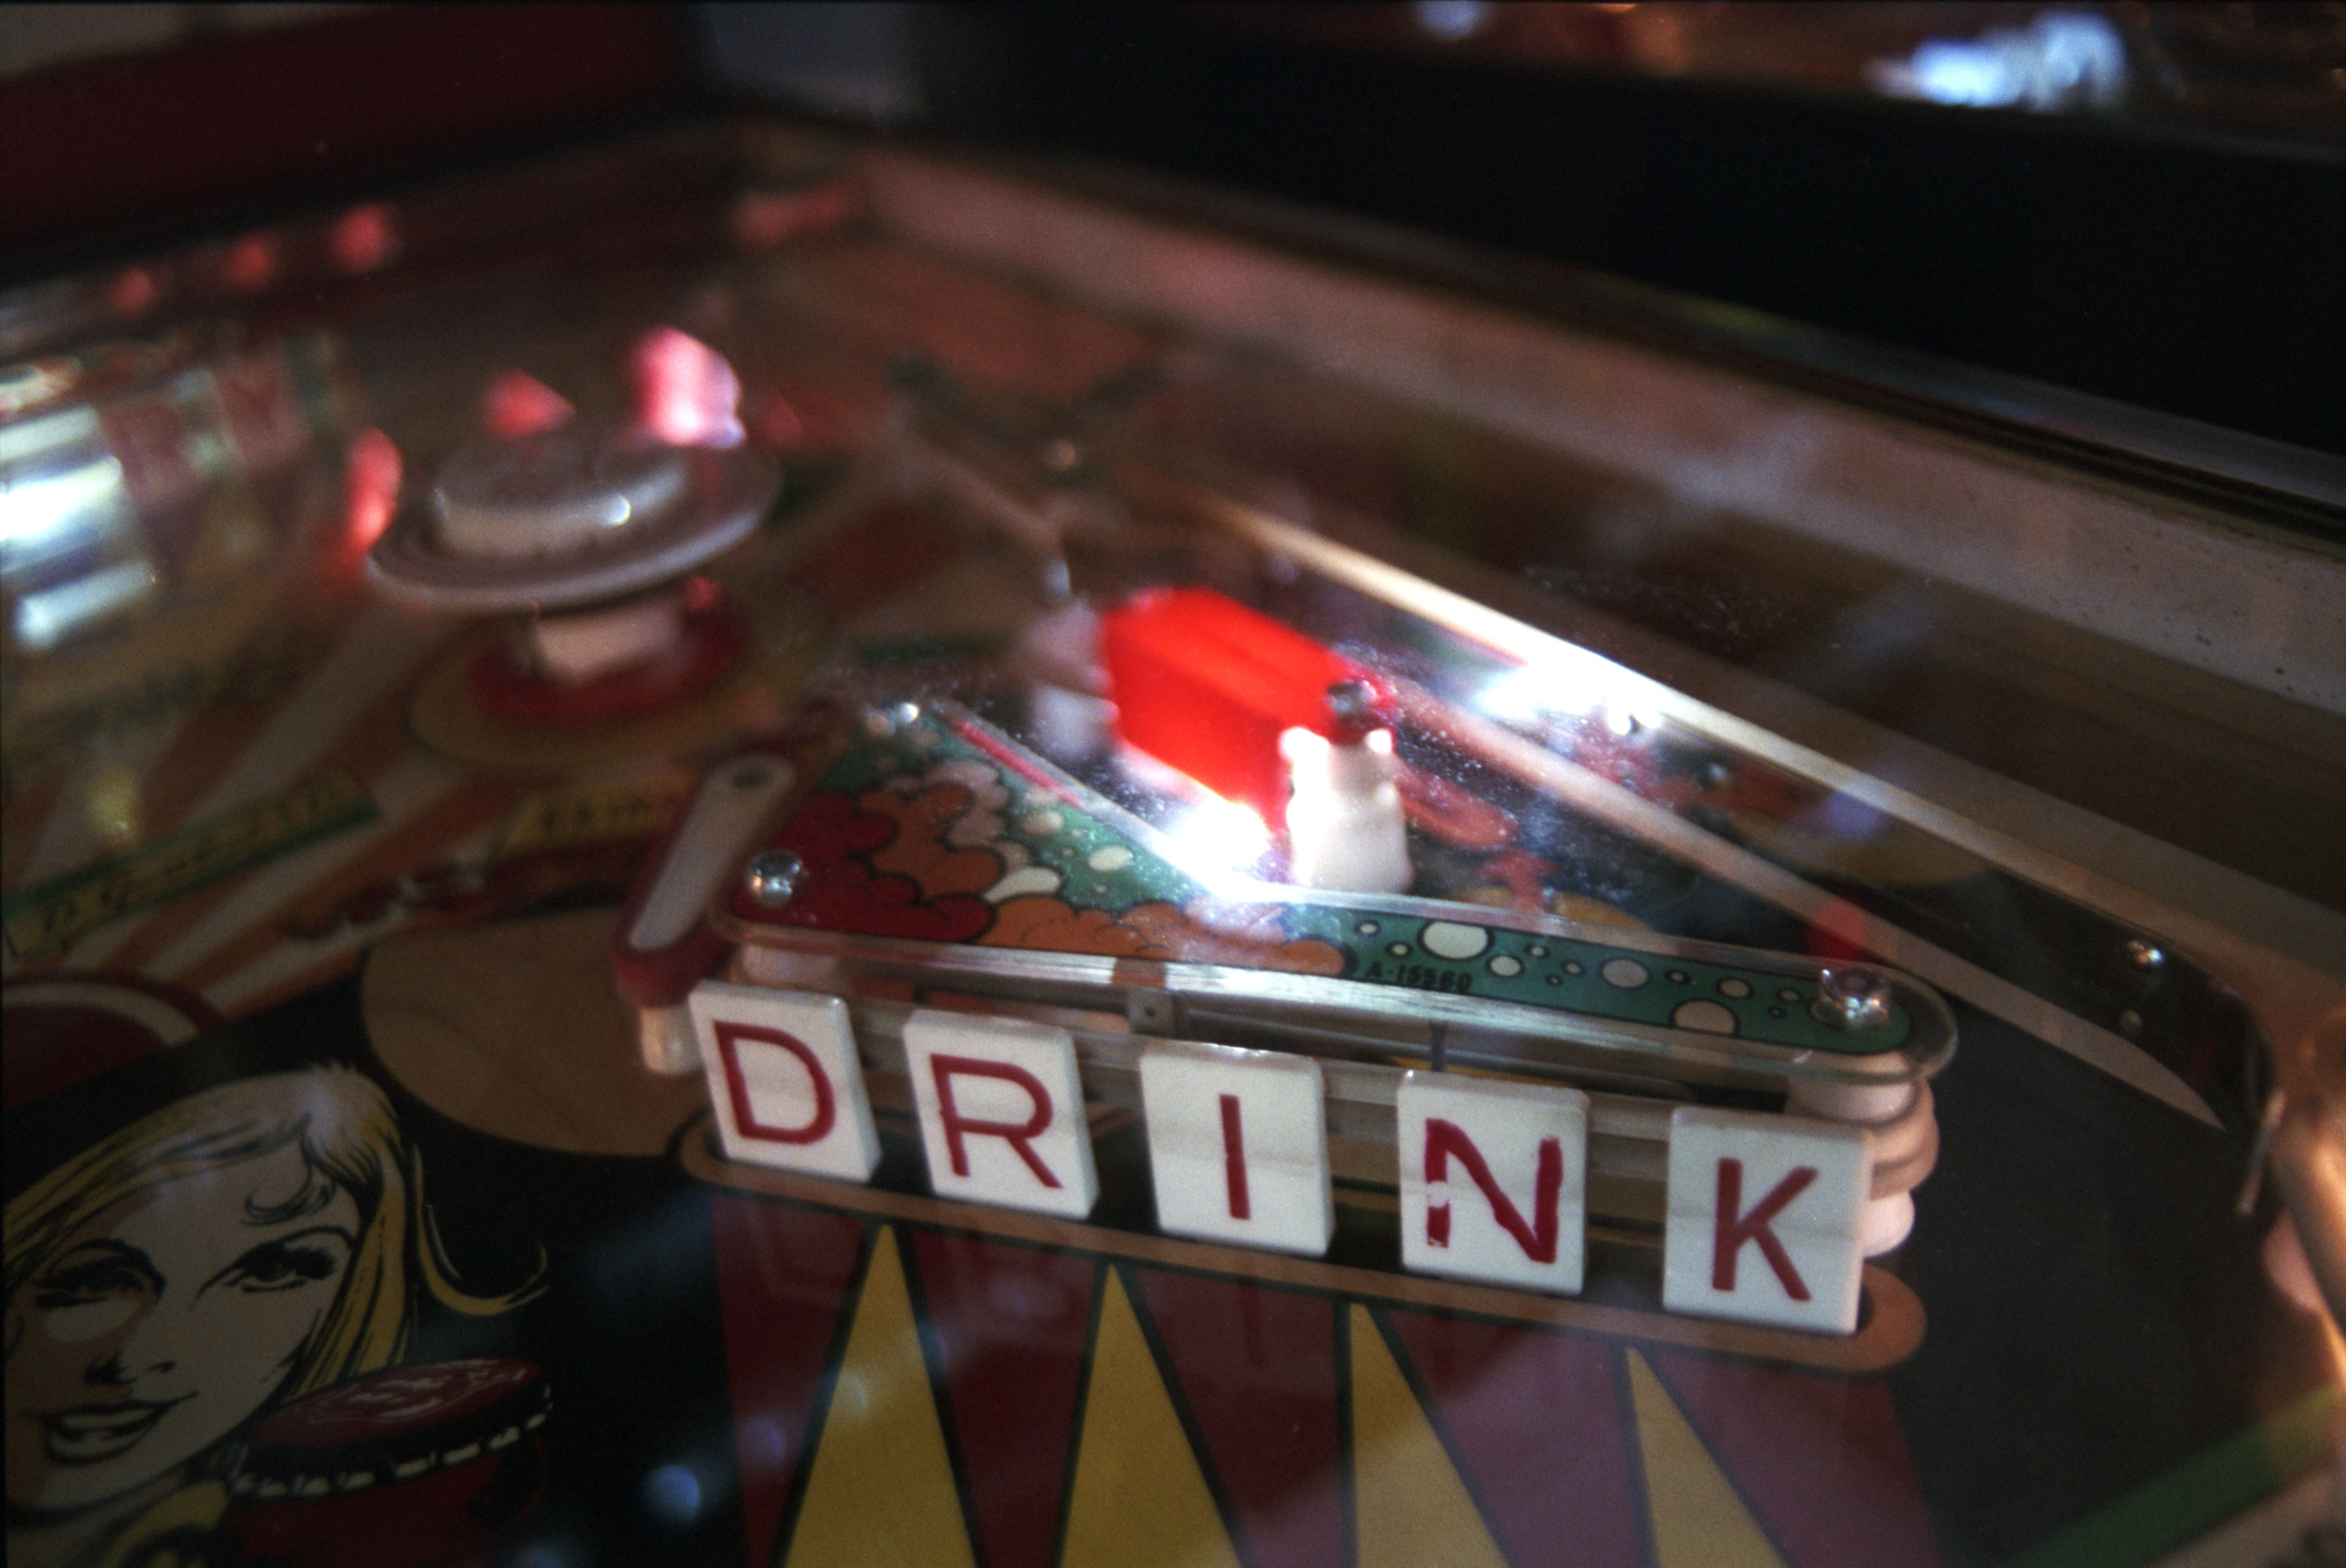 Drink,  part of the Pinball Hall of Fame series